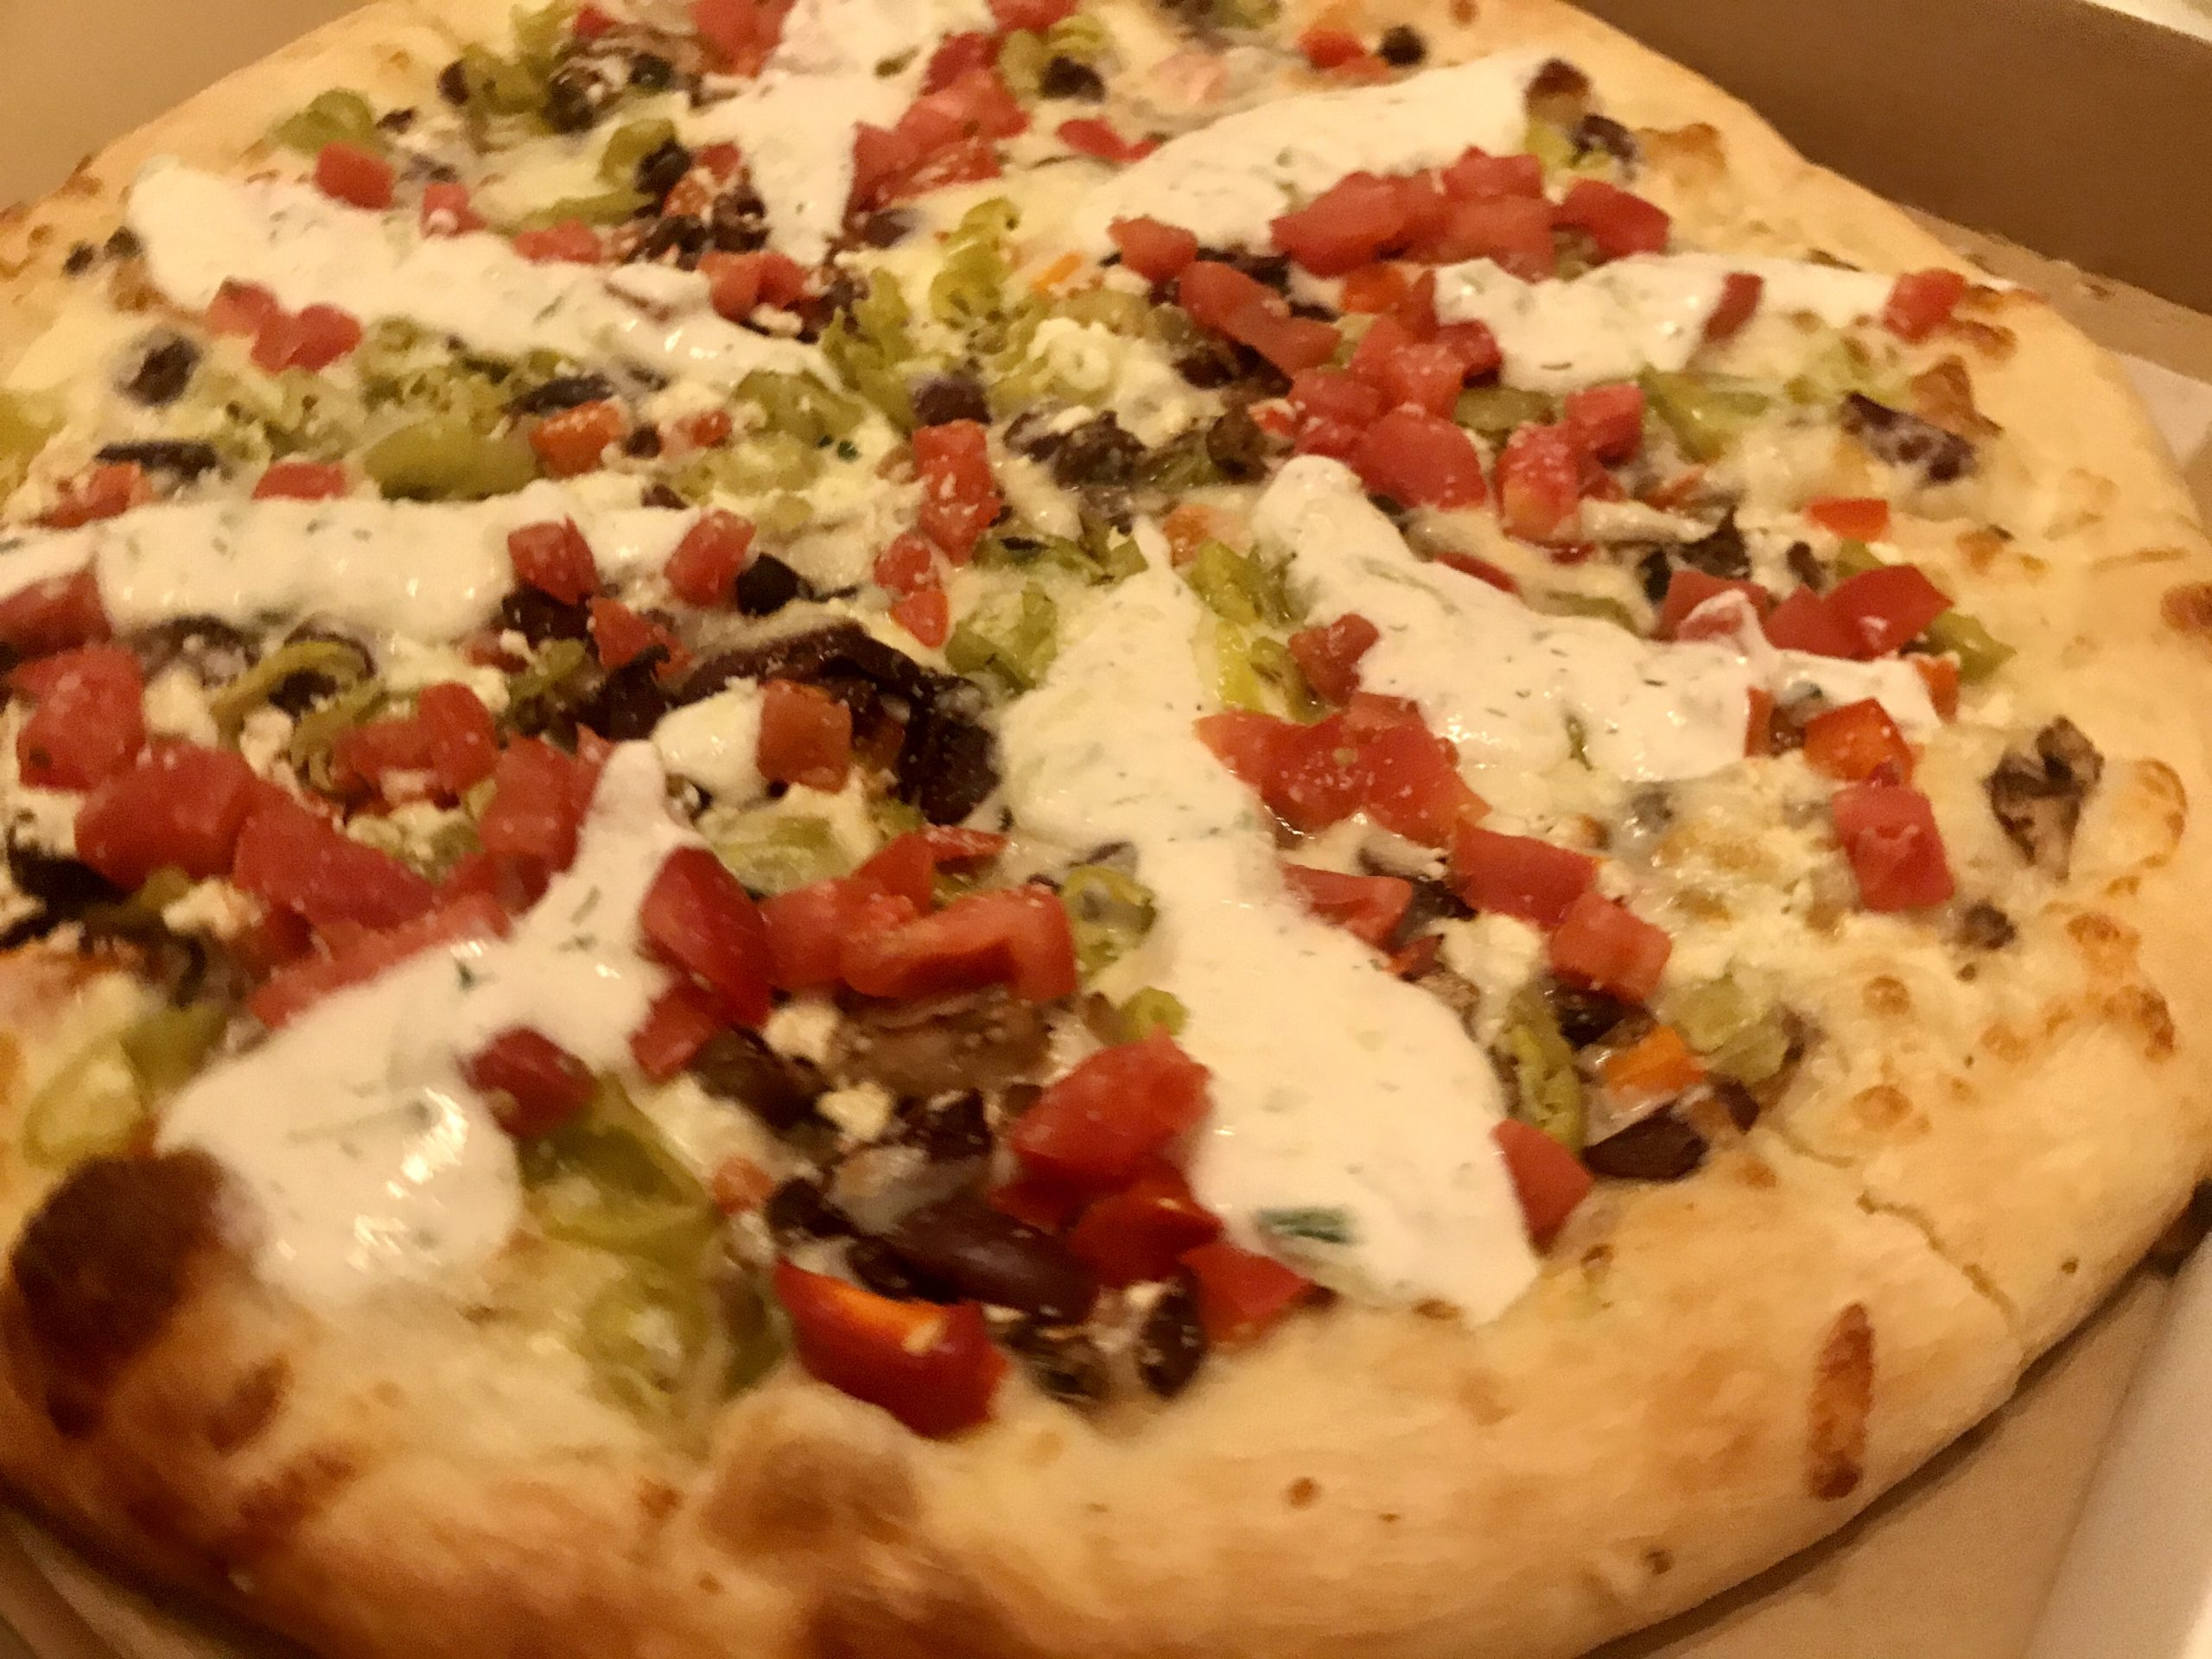 Pizza From Greek Islands in Richland – October 28 2020